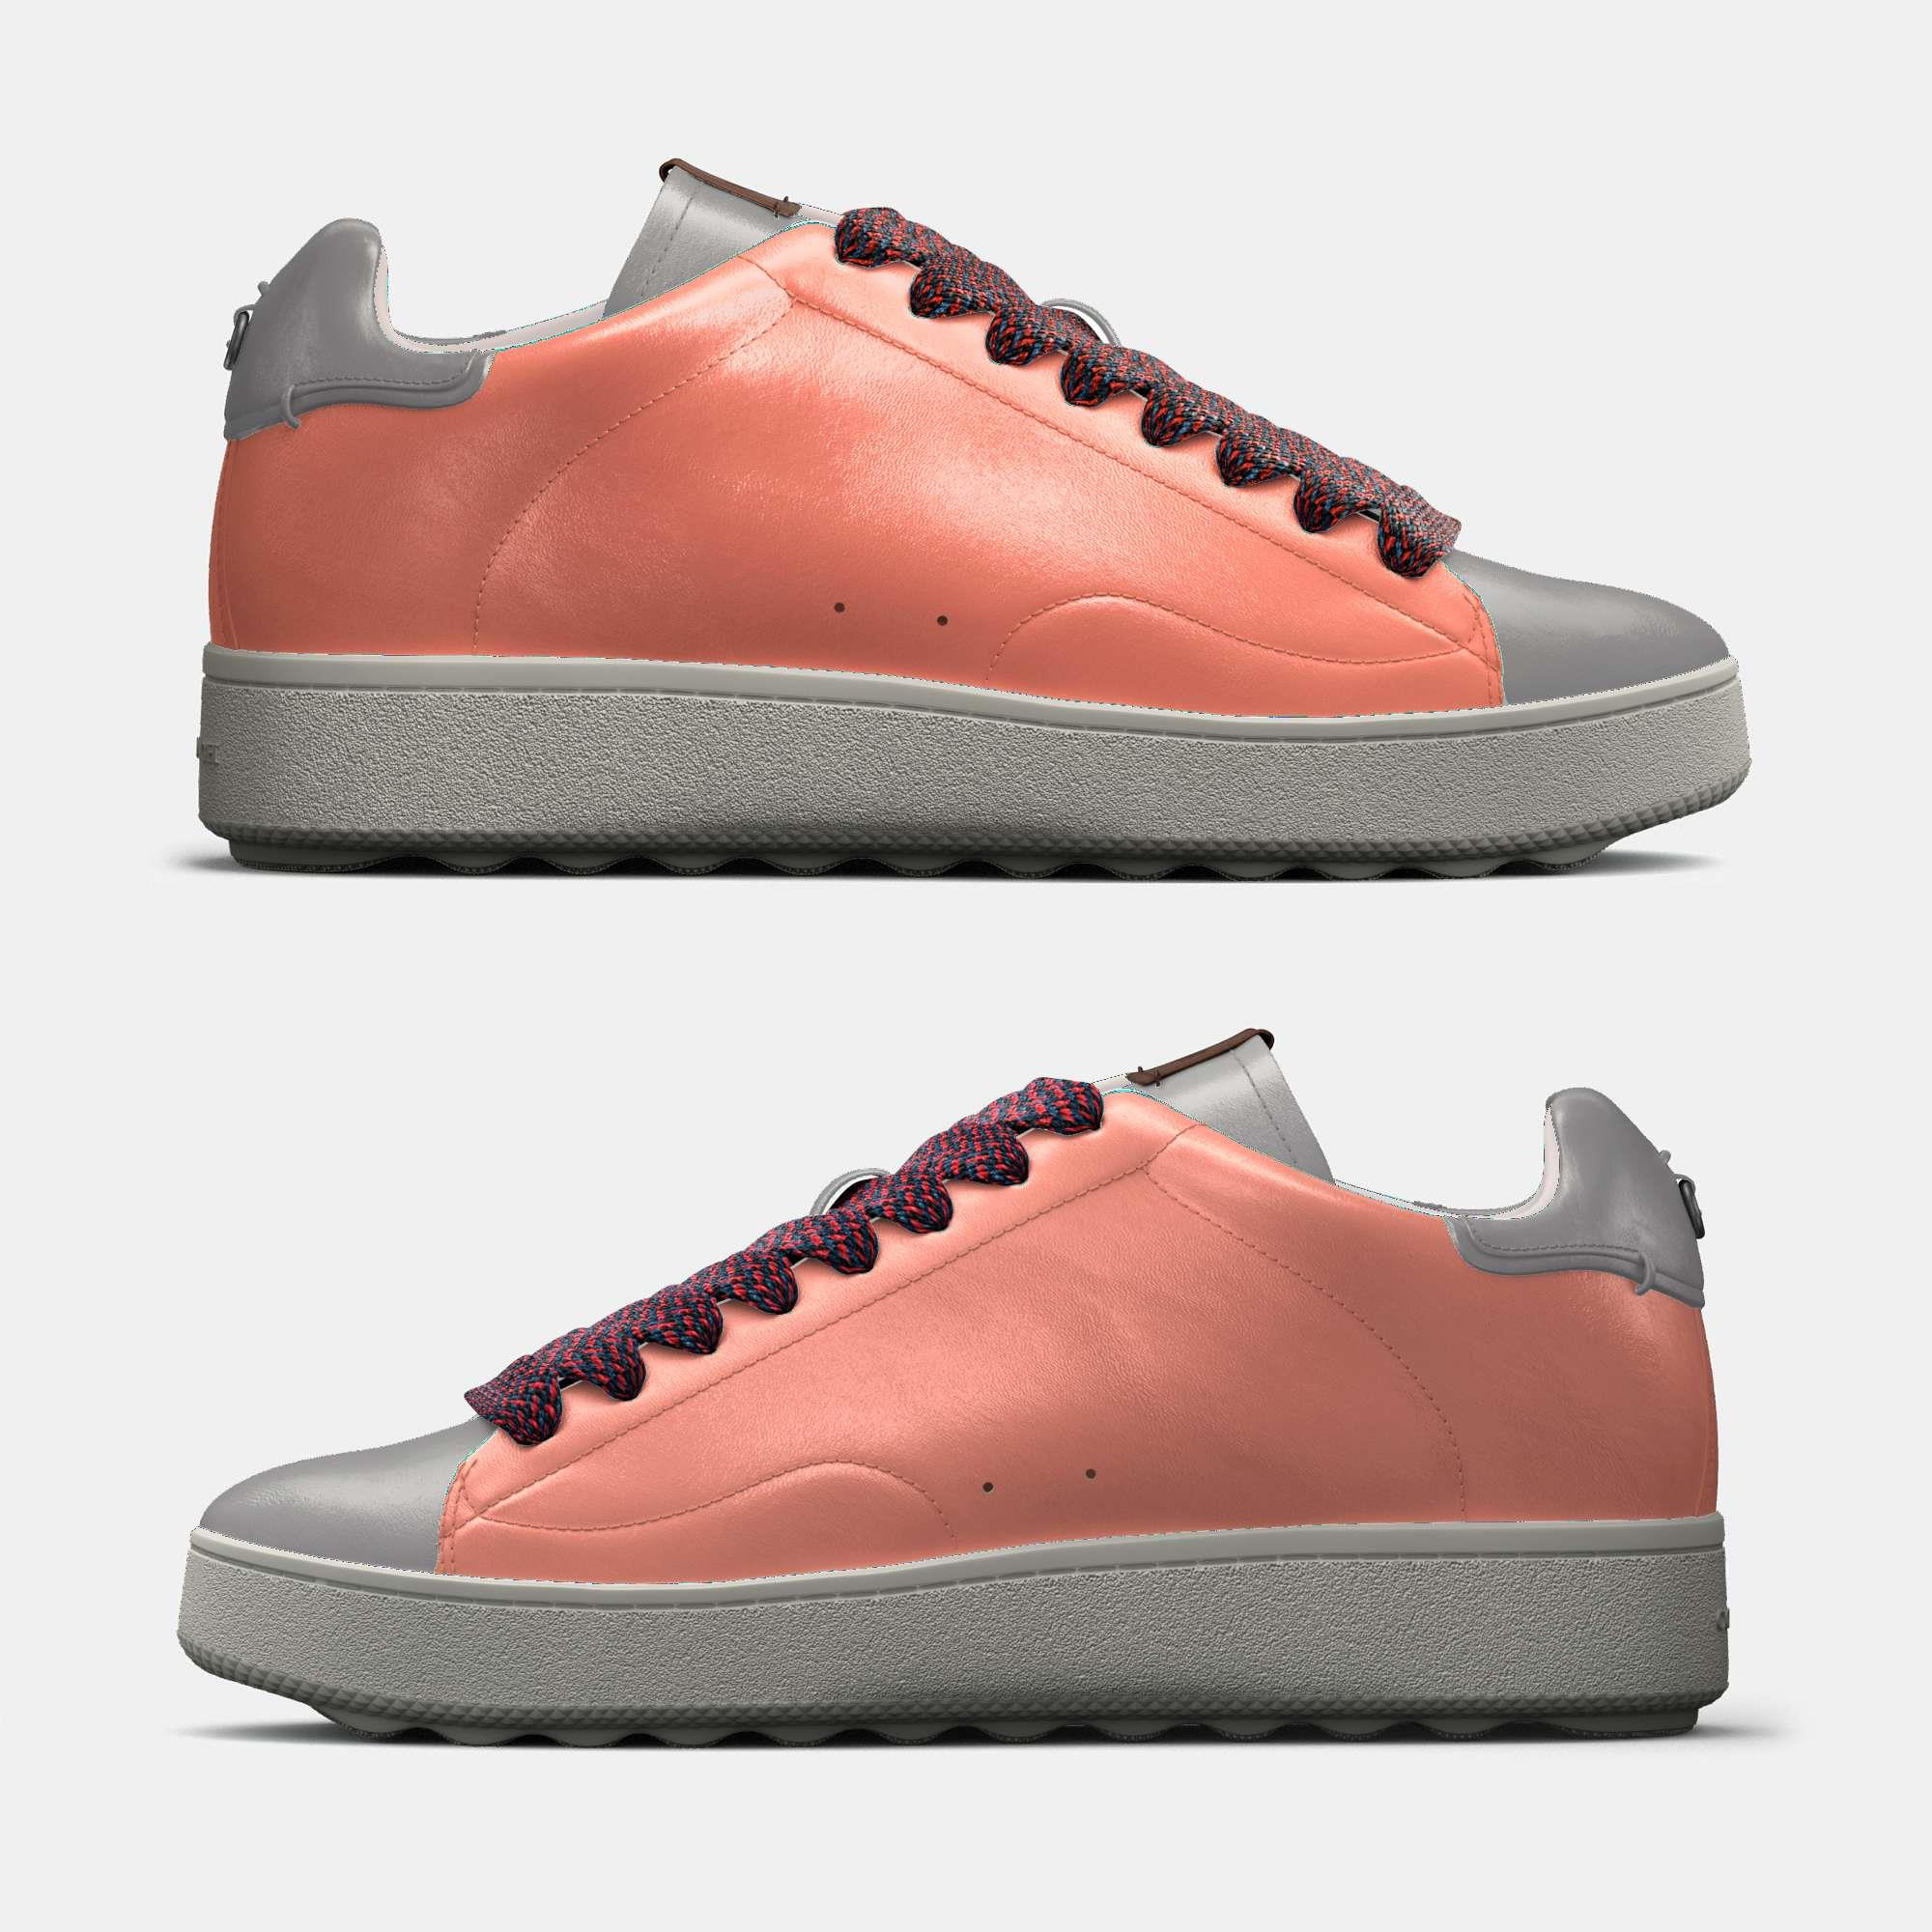 Customize Made To Order Women's Sneaker